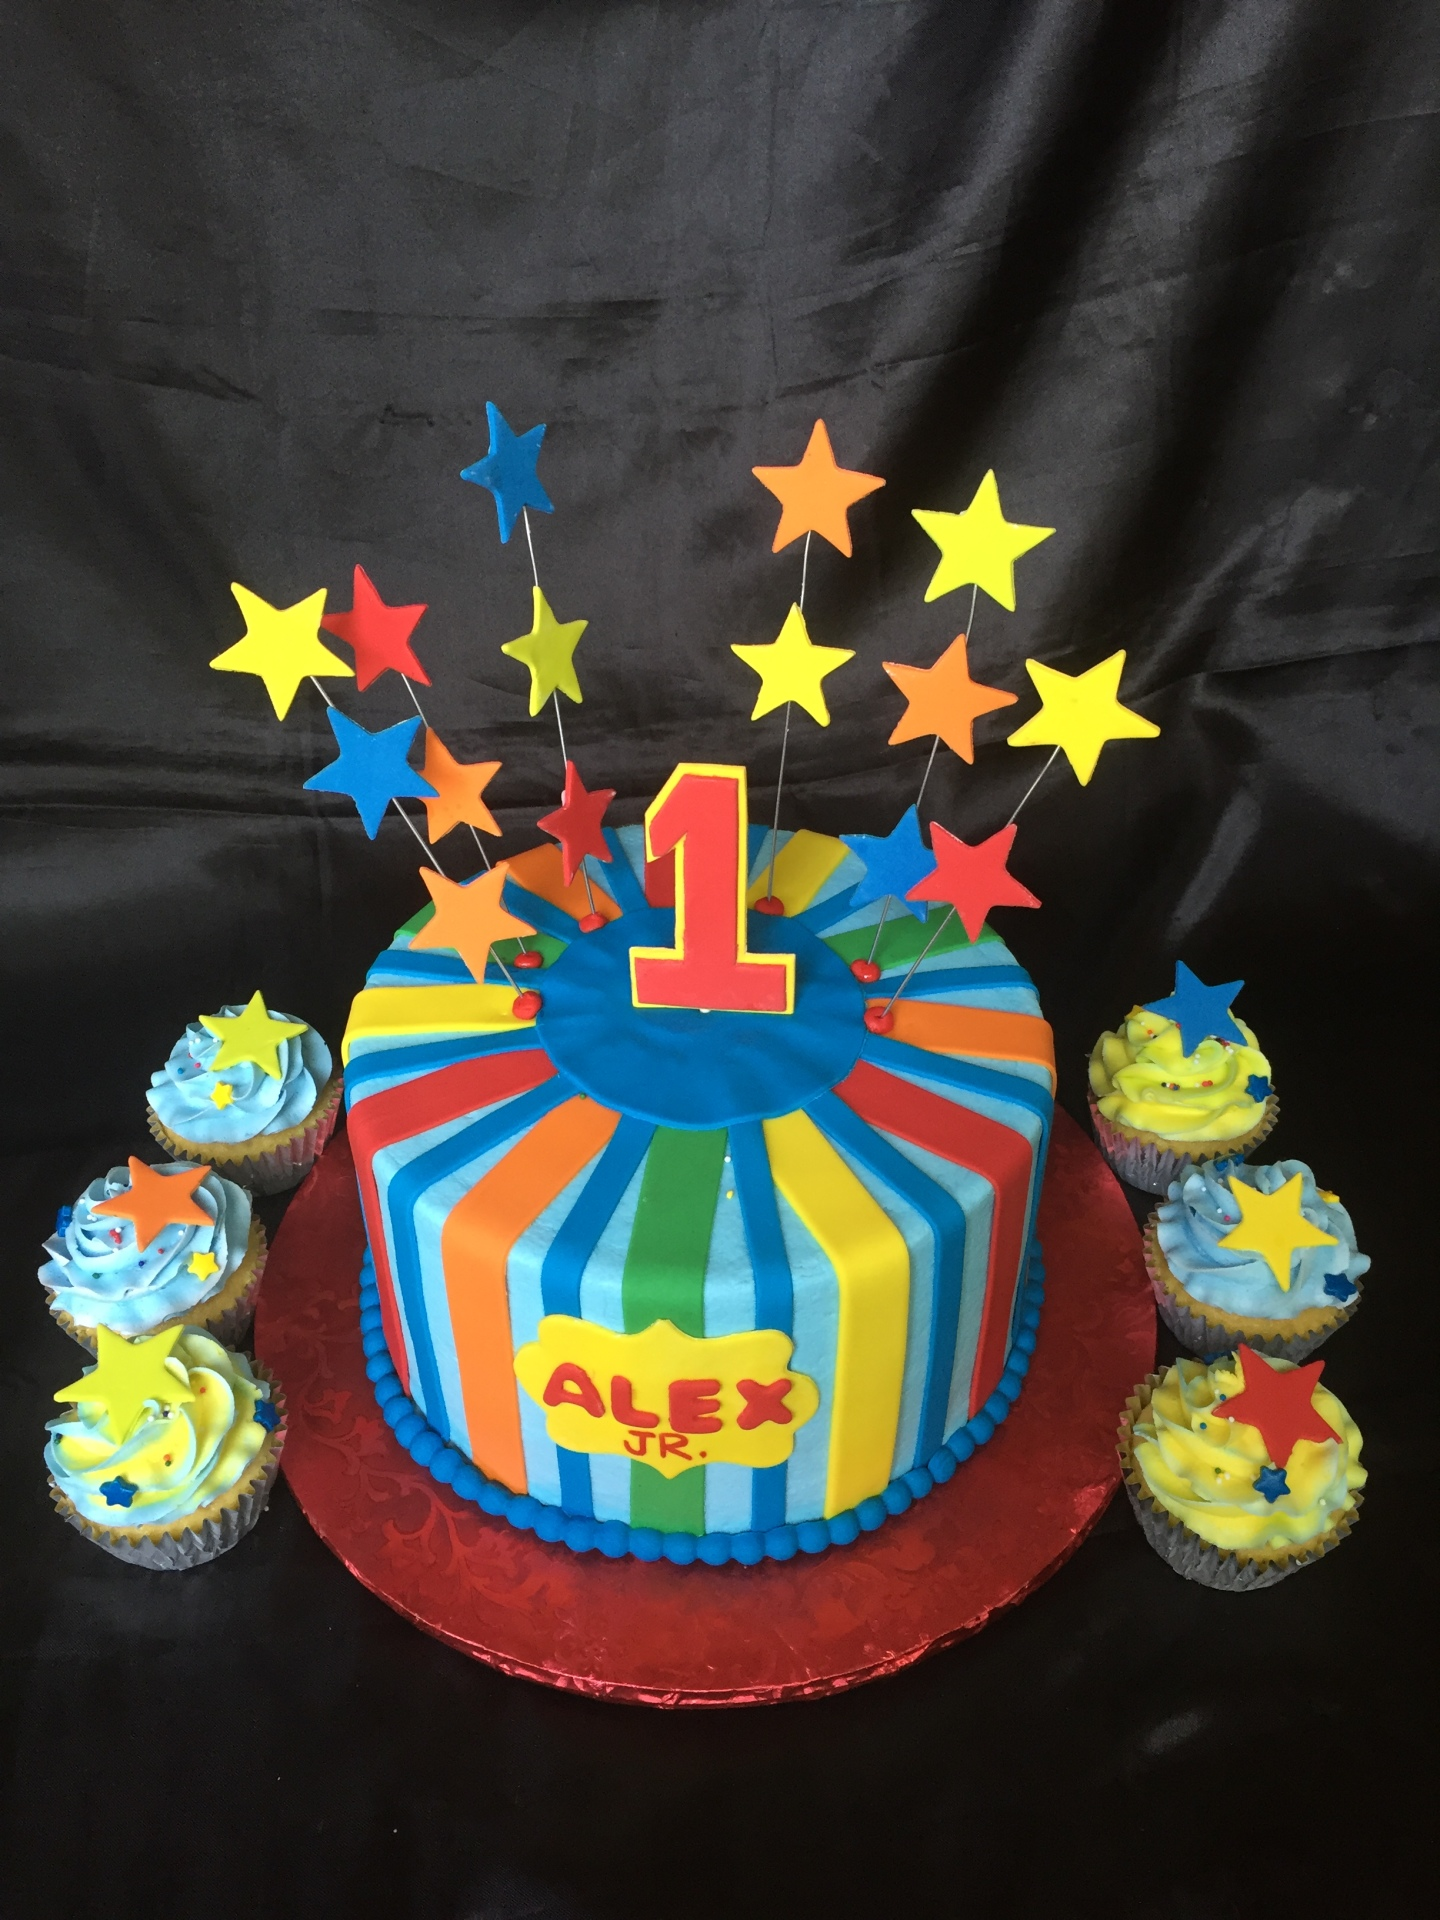 Colorful 1st birthday cake with stars